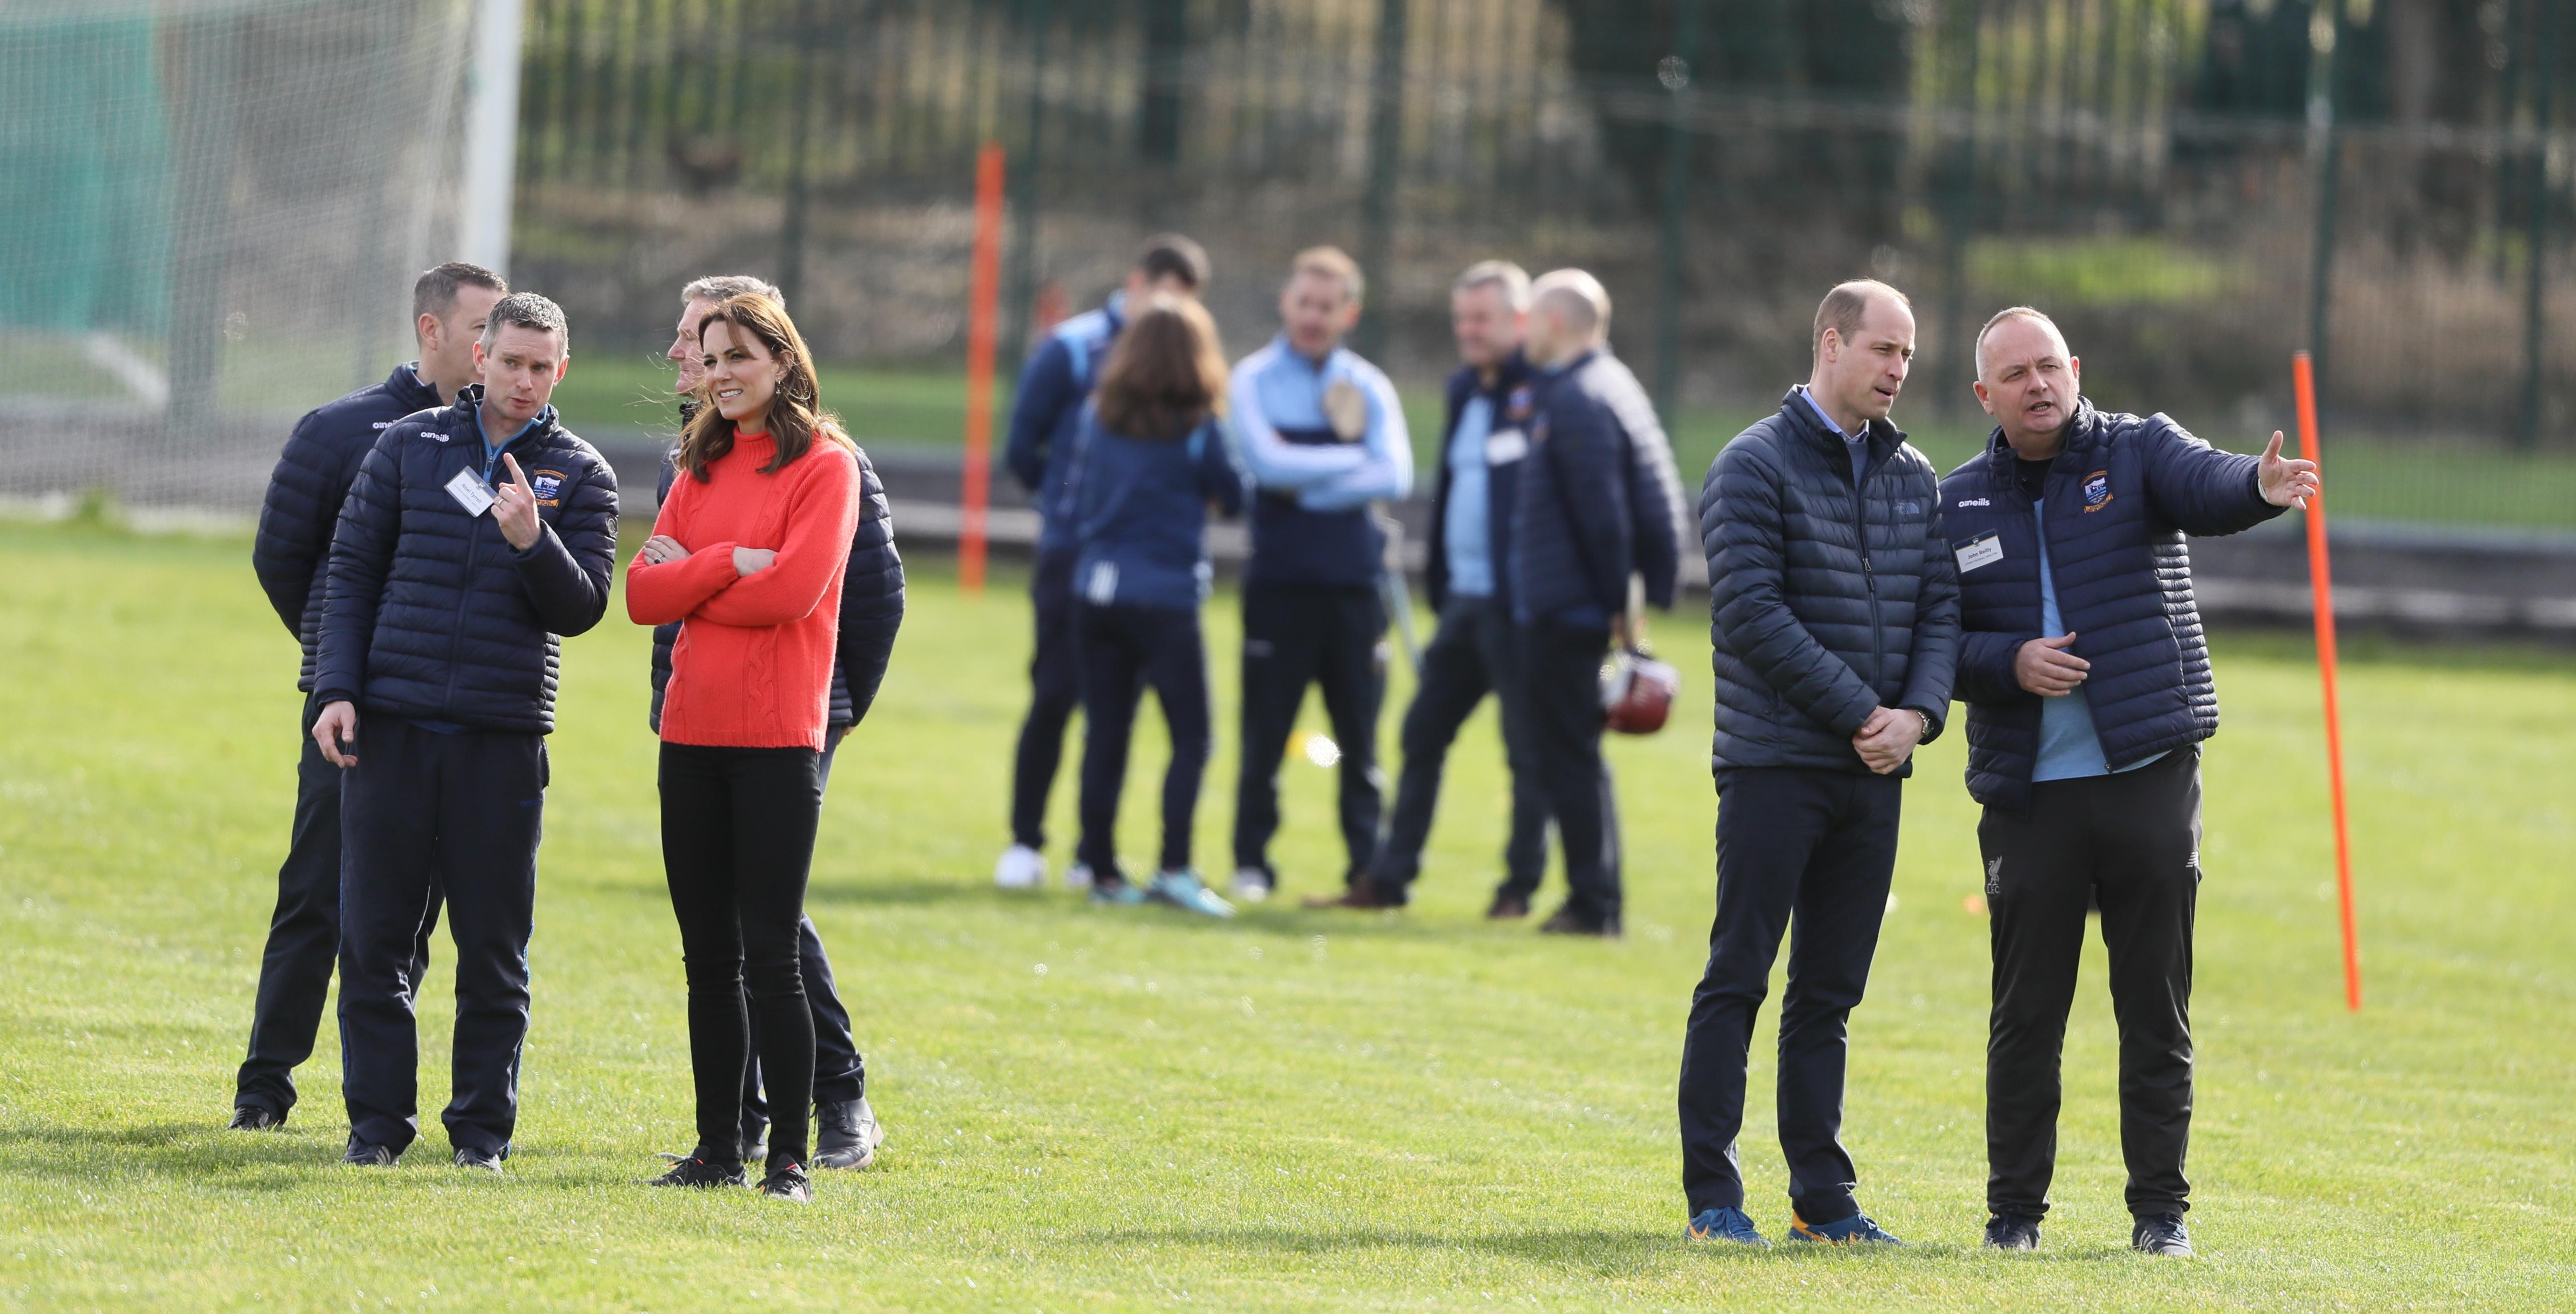 The Duke and Duchess of Cambridge at a local Gaelic Athletic Association (GAA) club during the third day of the roya visit to the Republic of Ireland.